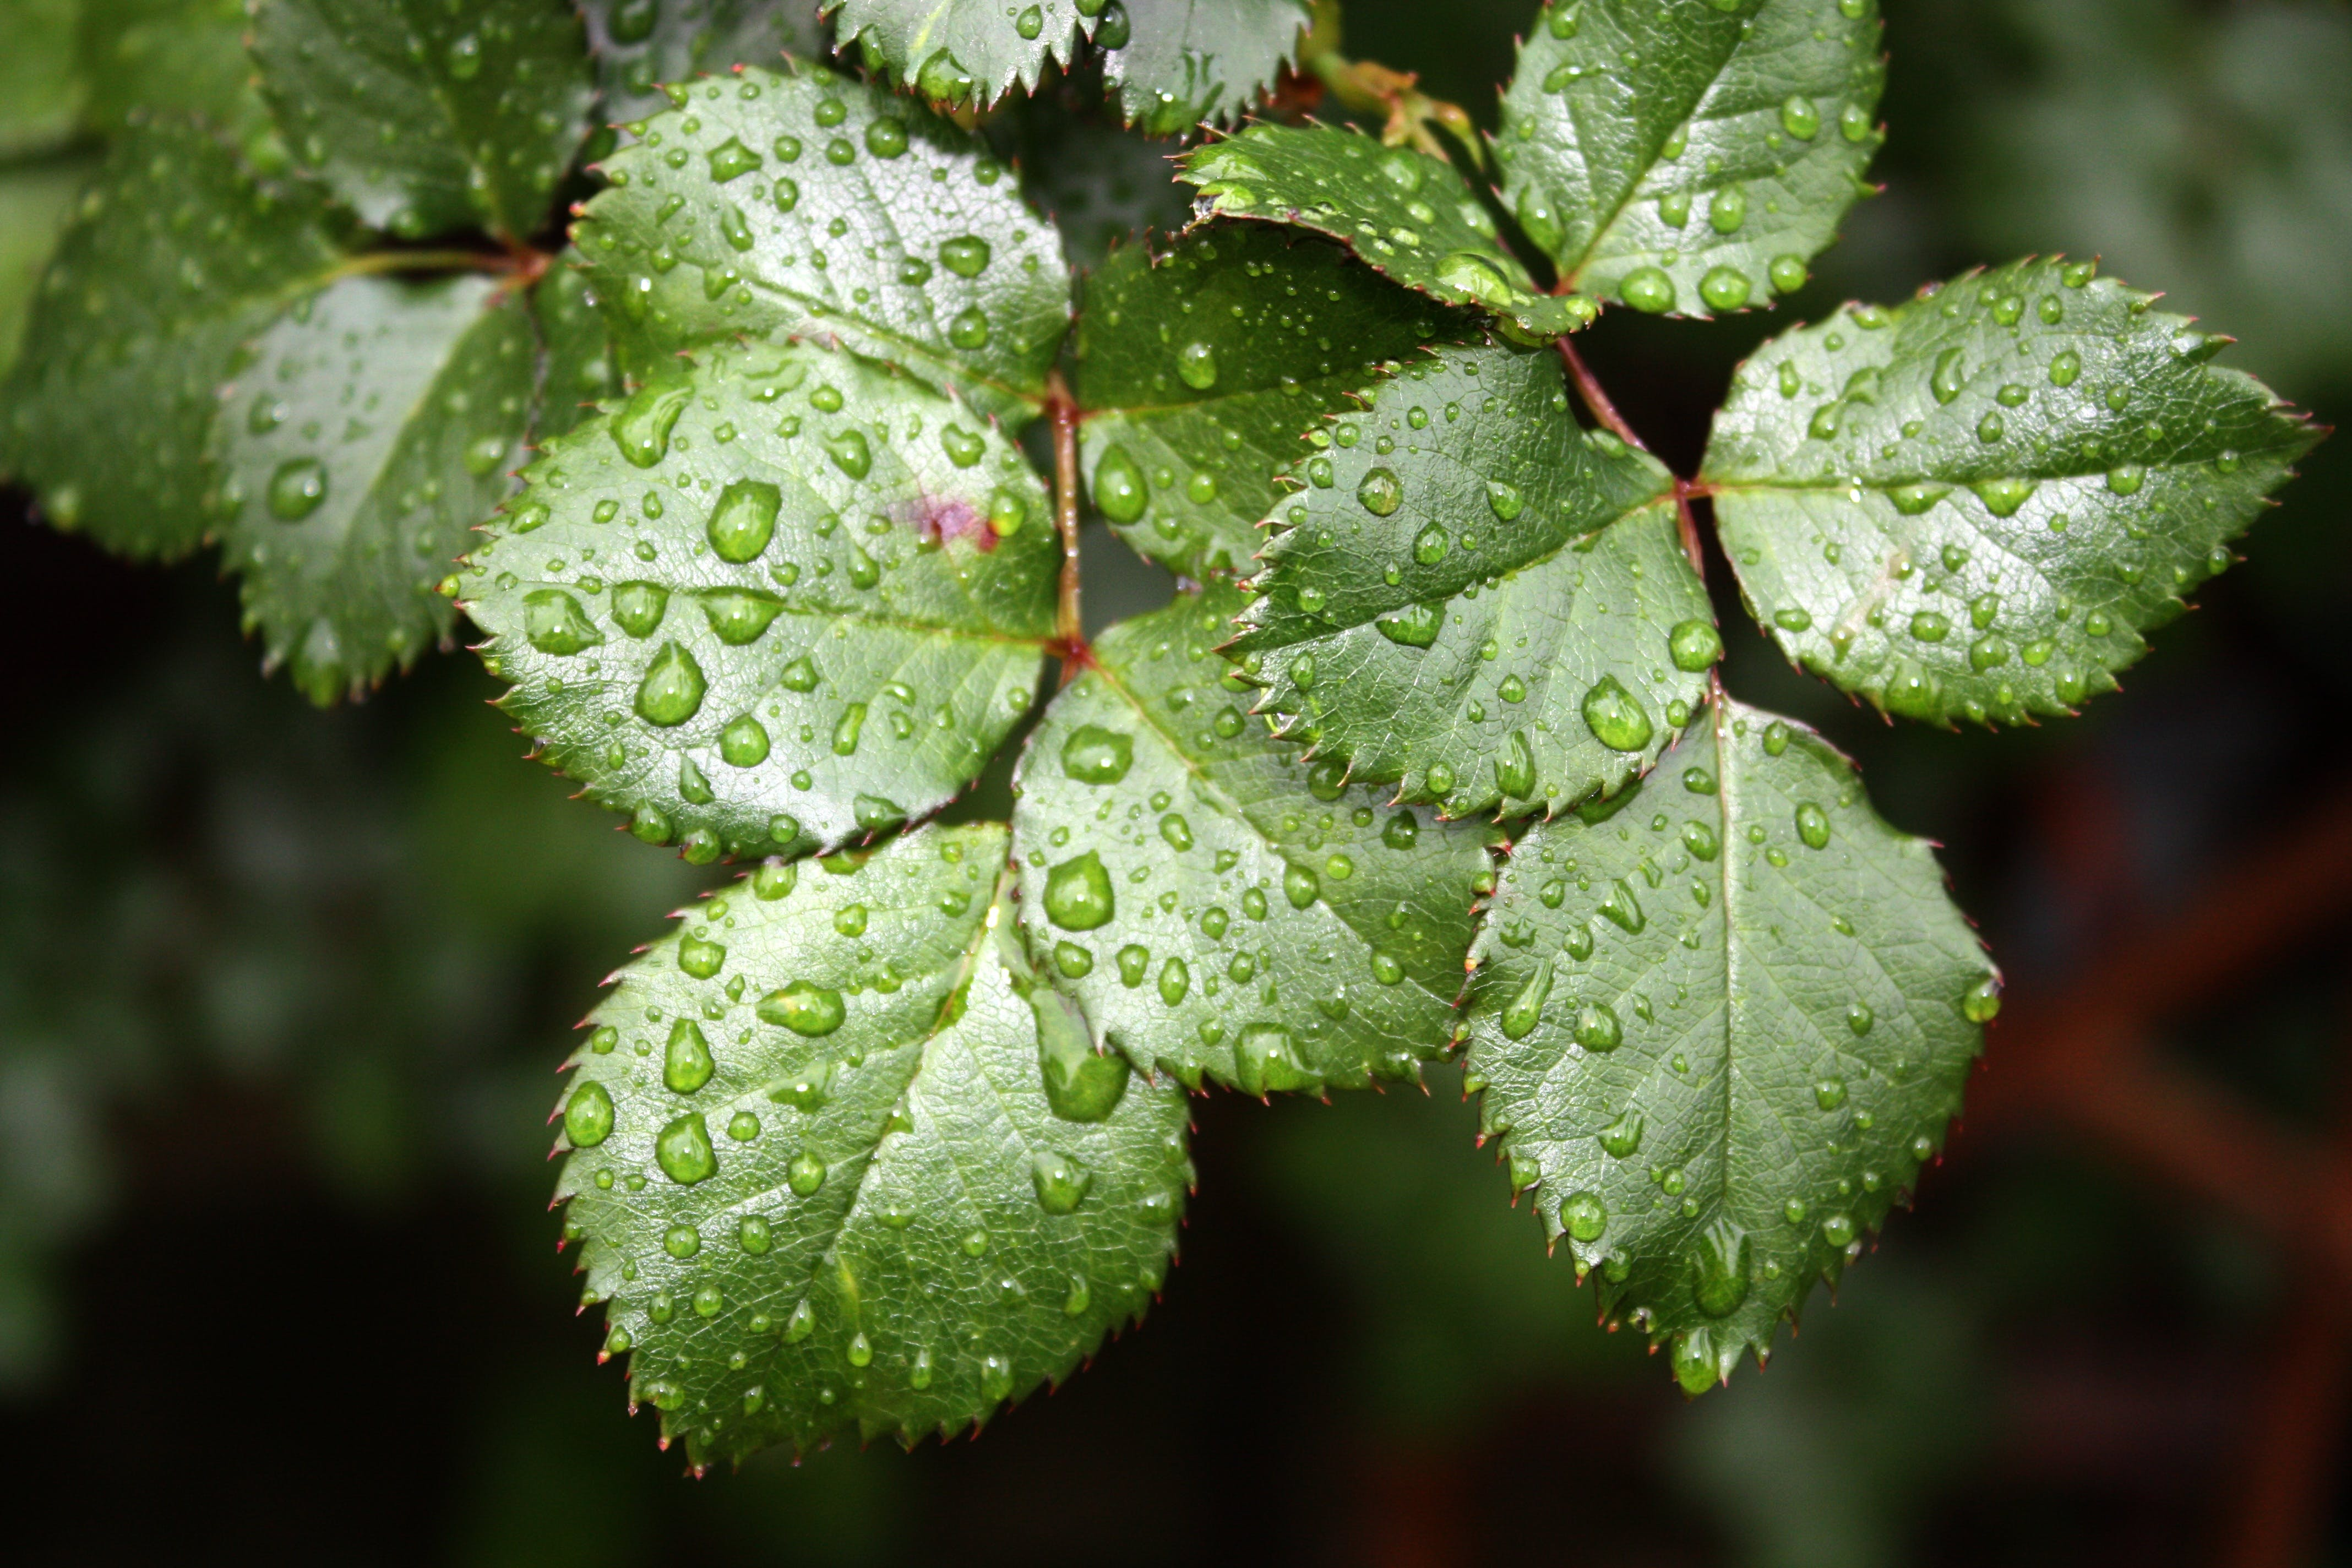 Green Rose Plant Leaves With Dew Closeup Photography